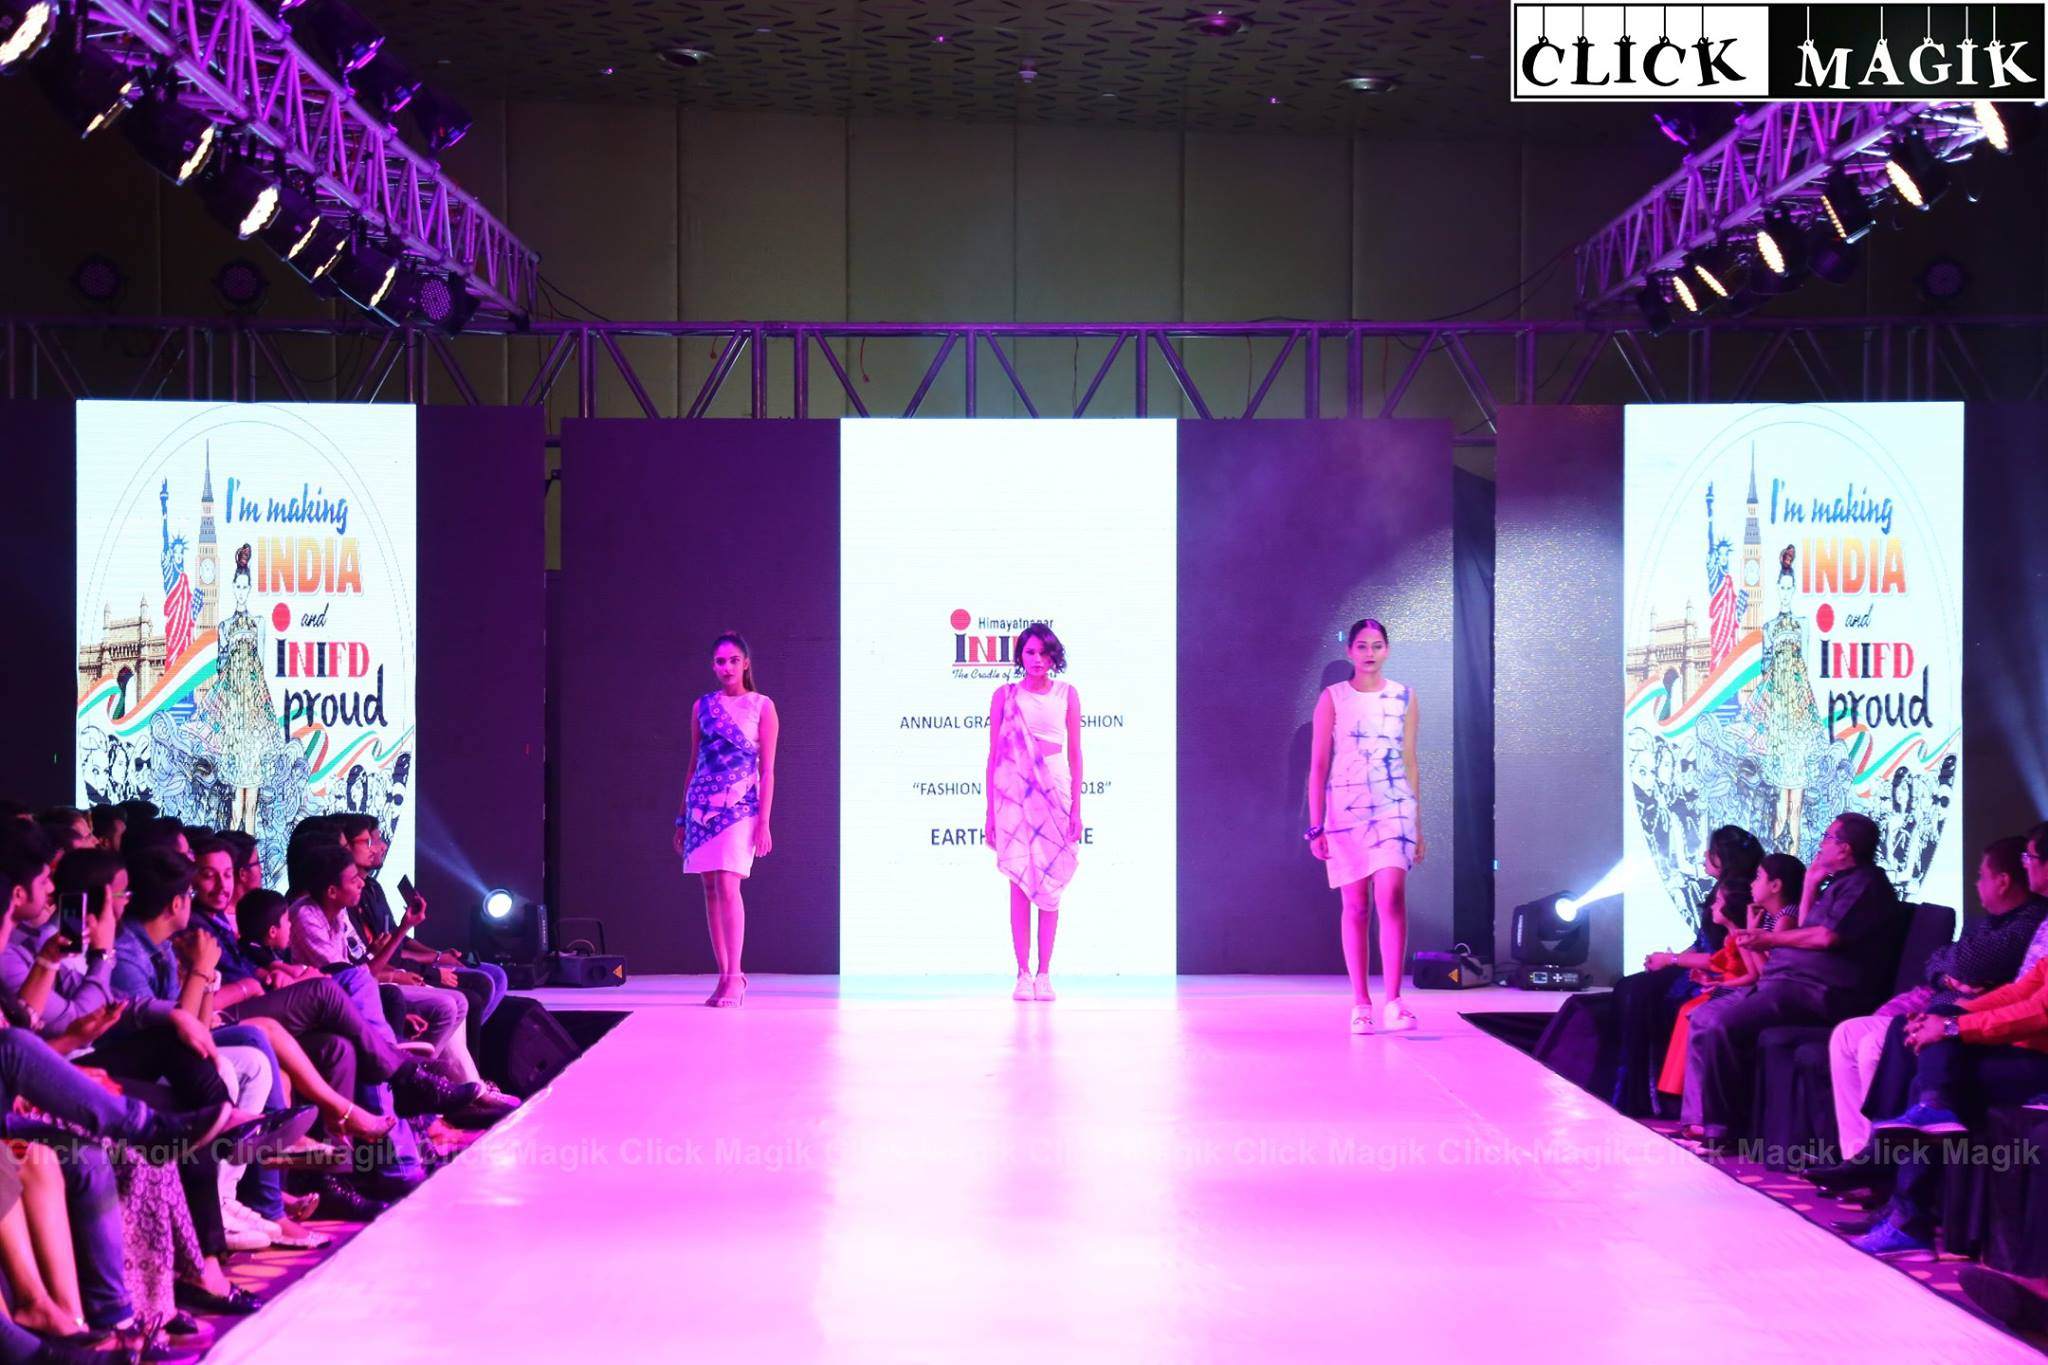 Inter National Institute Of Fashion Design Himayat Nagar Hyderabad Courses Fees Placements Ranking Admission 2020